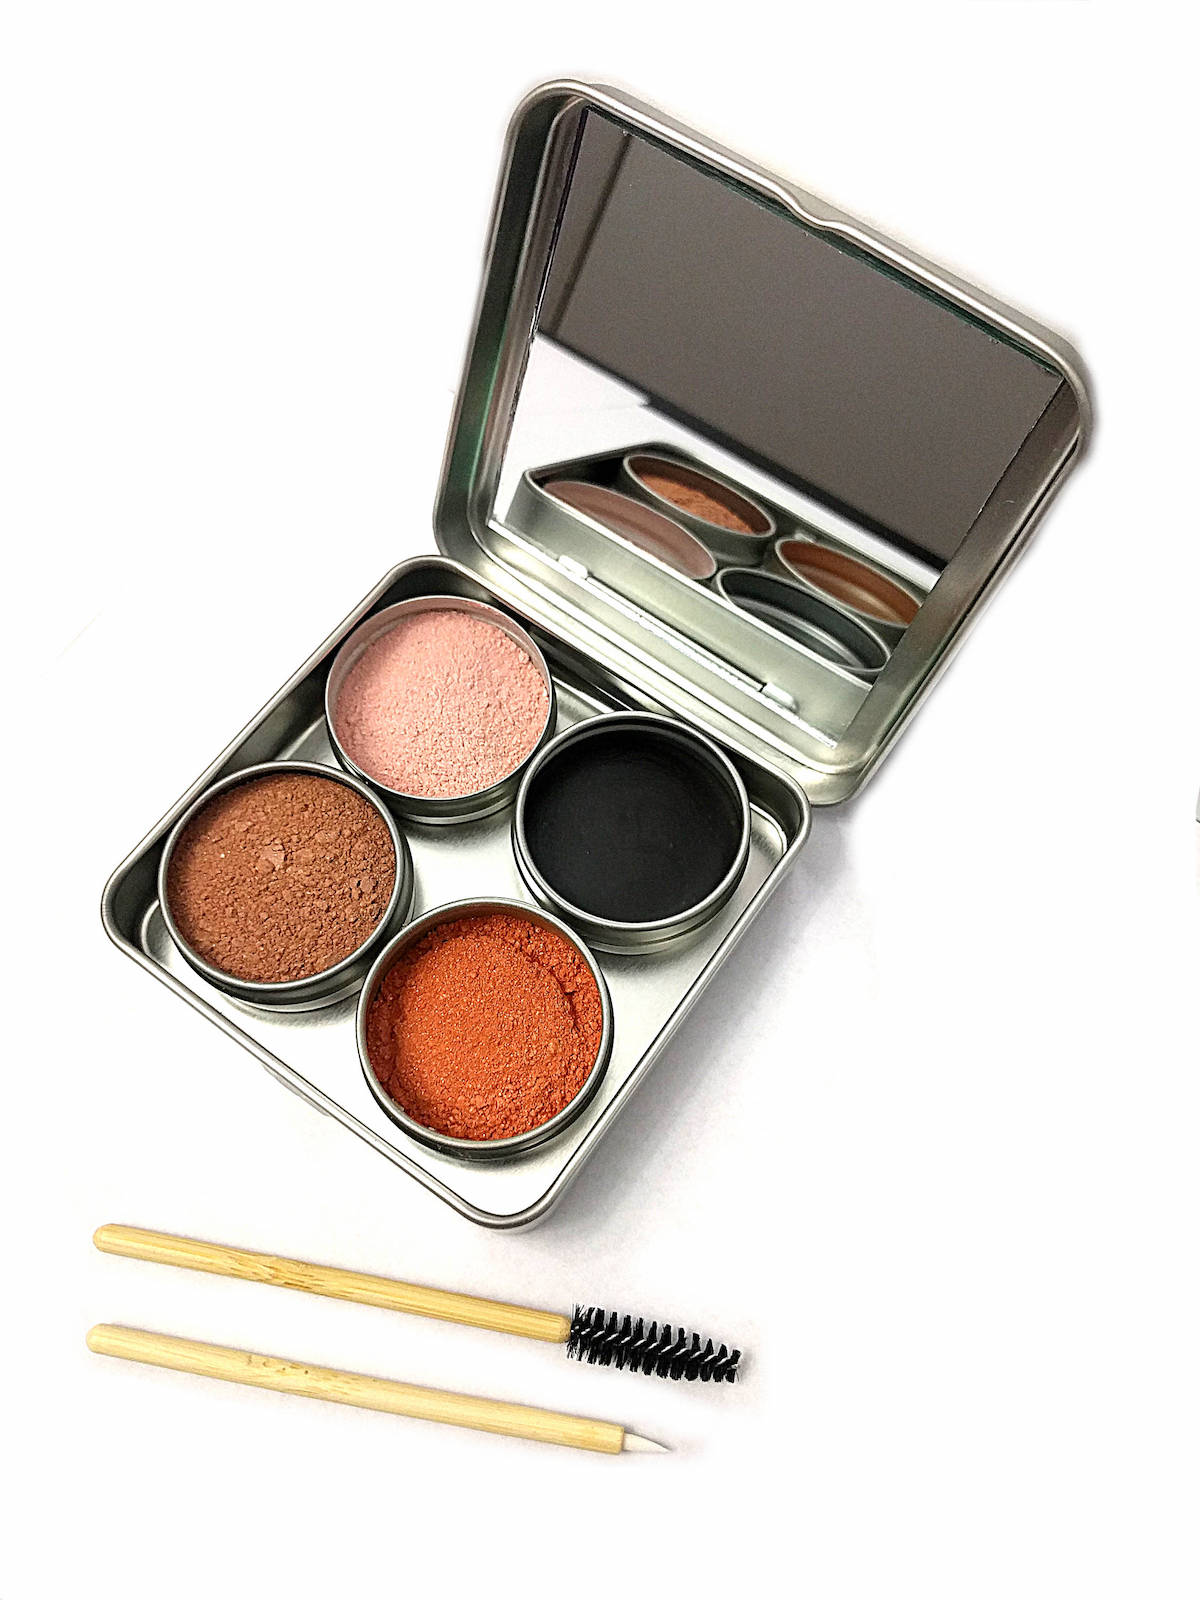 Customized powder zero waste makeup set